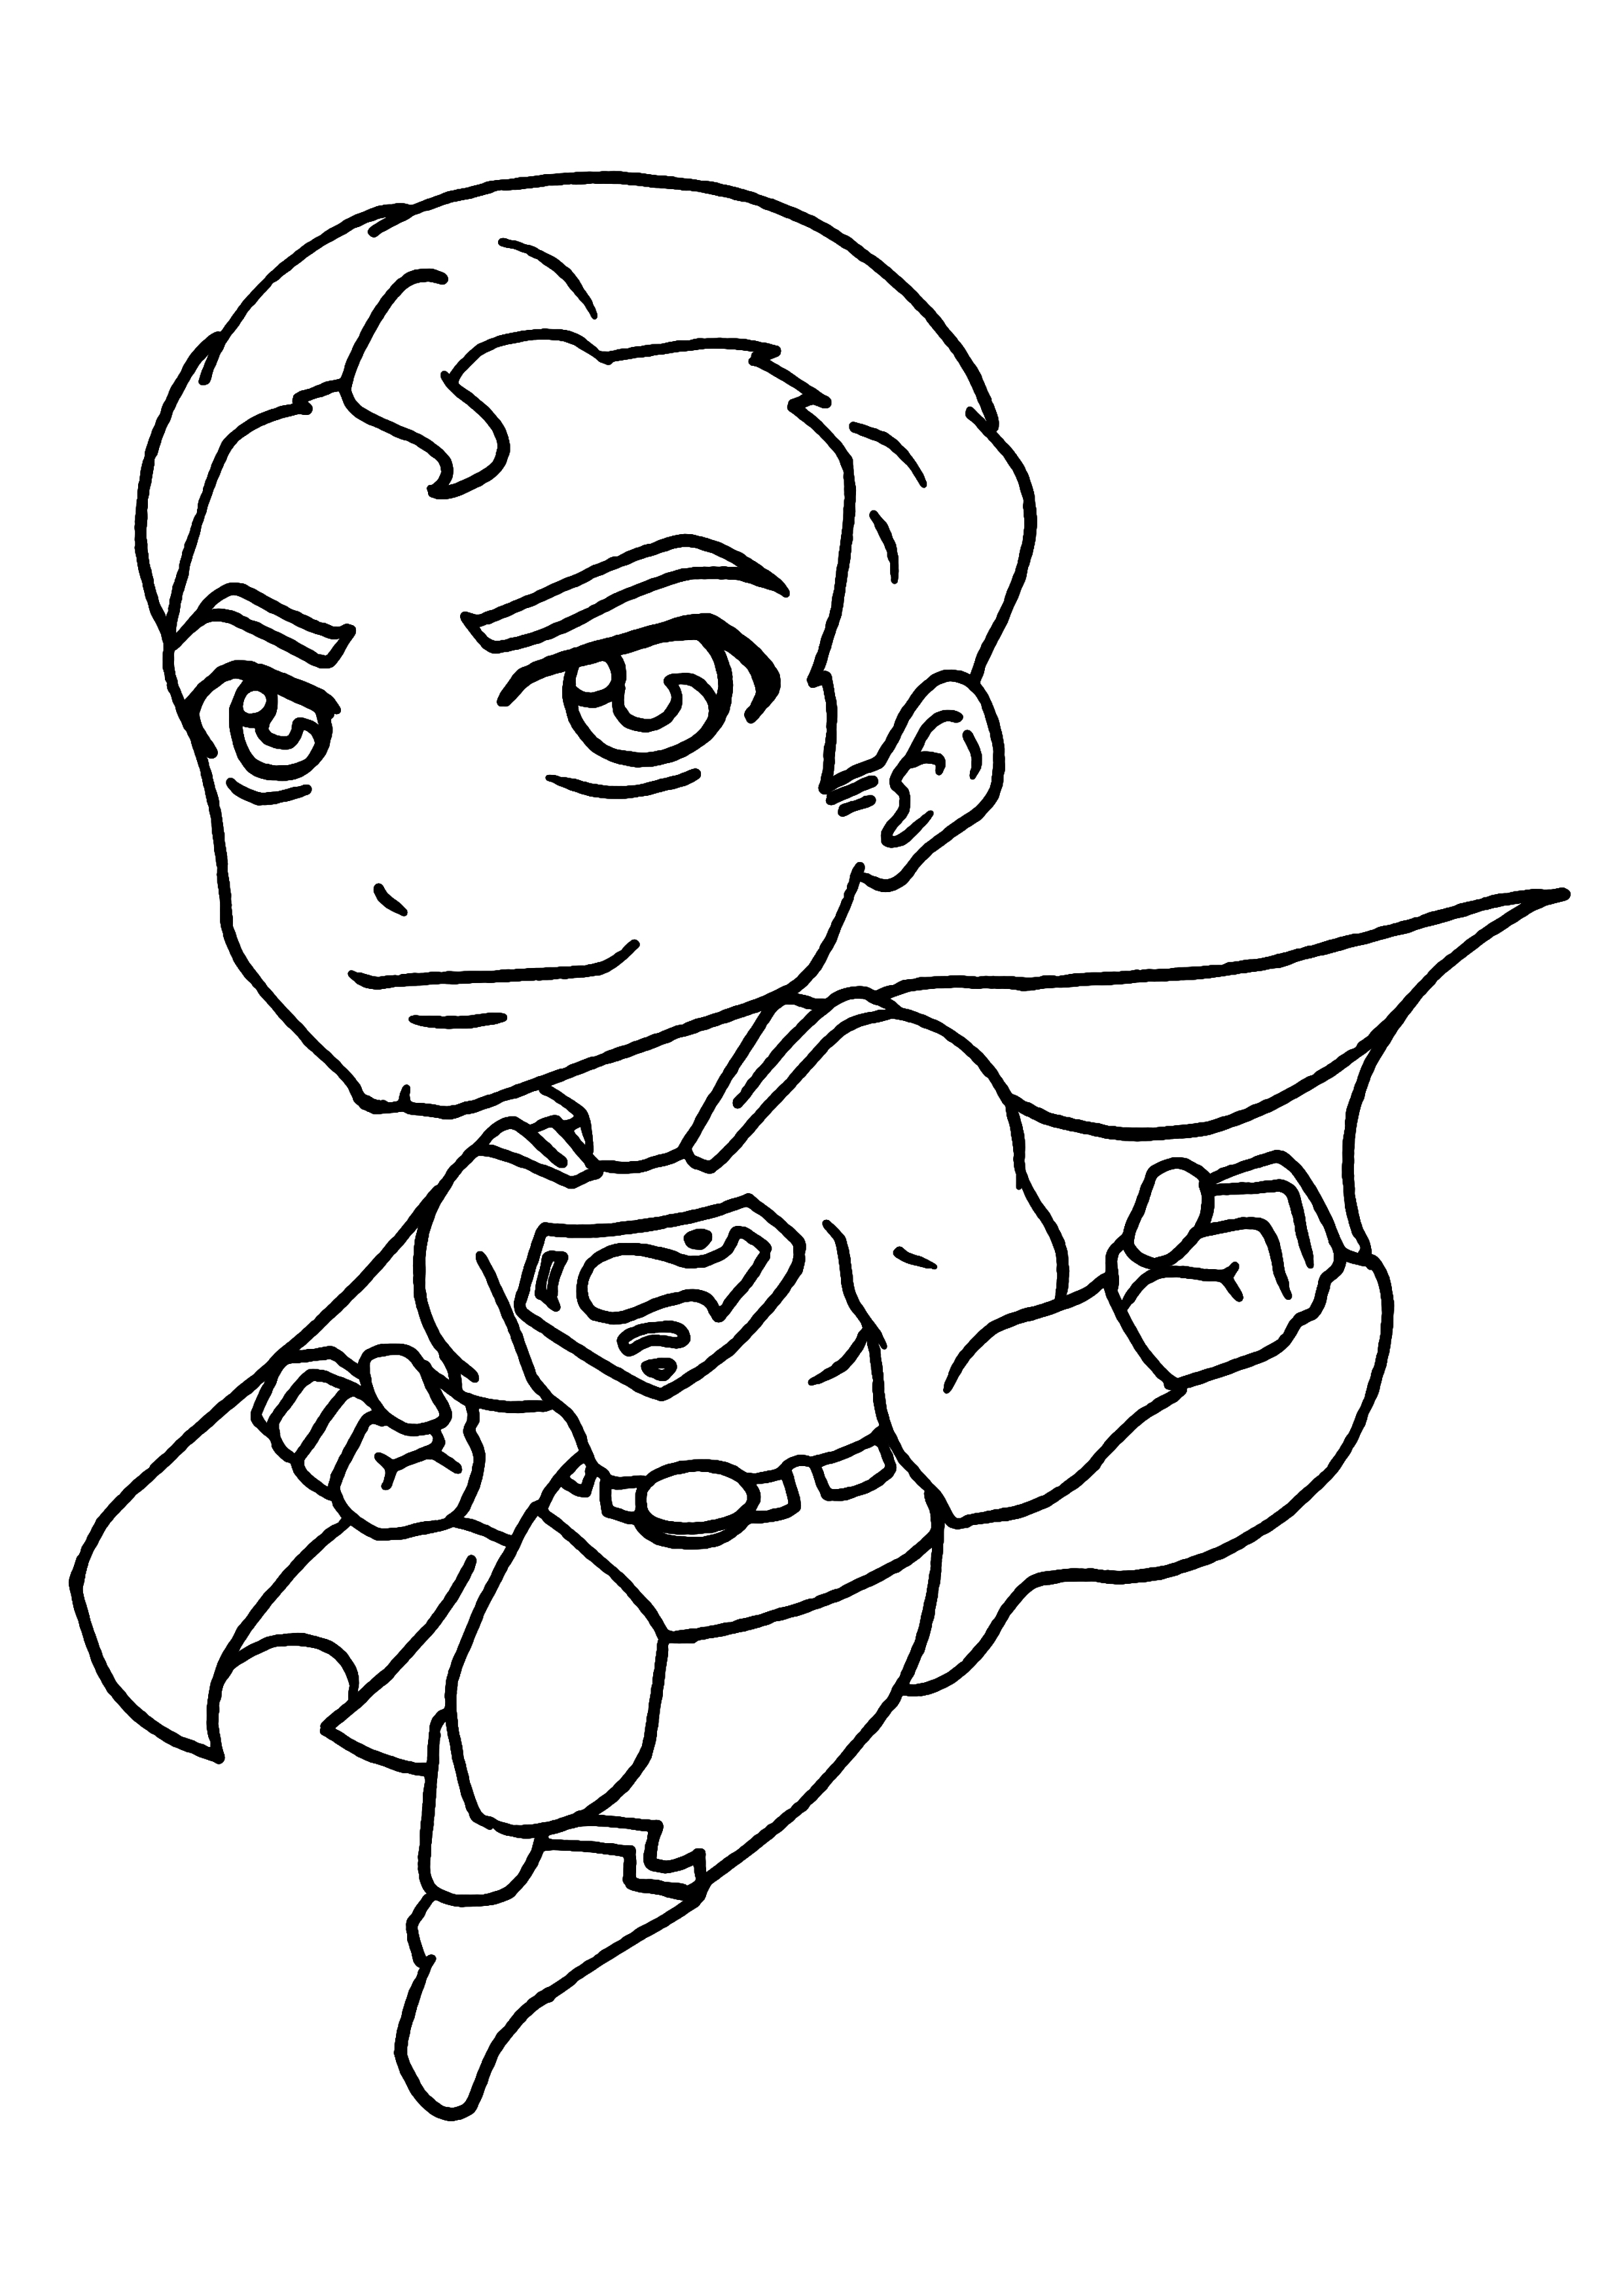 coloriages de super héros superman